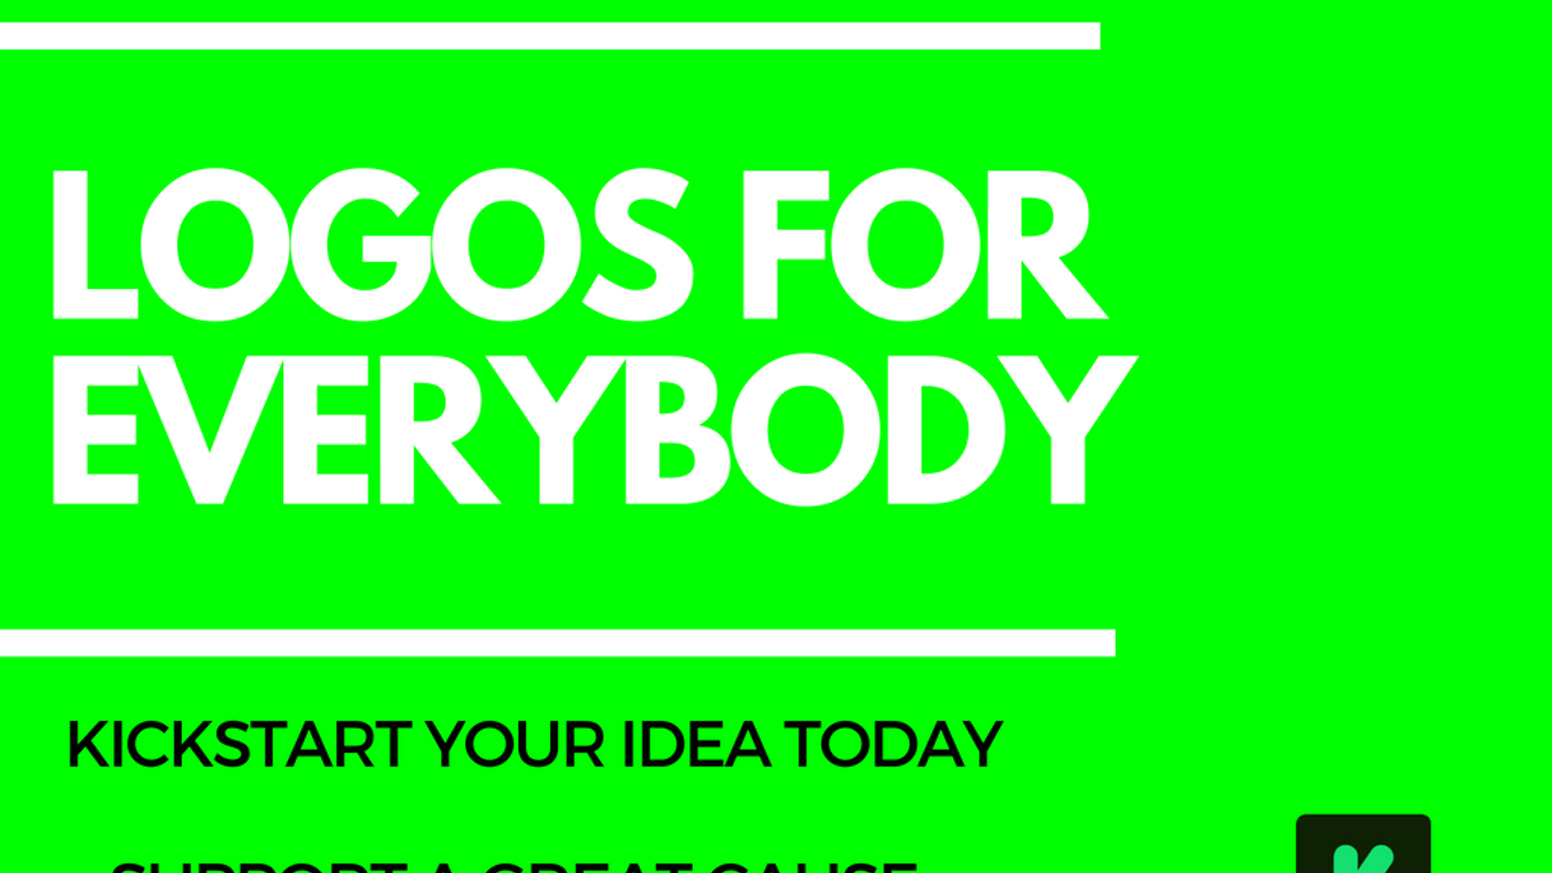 kickstart your idea logos for everybody by kameron brown updates